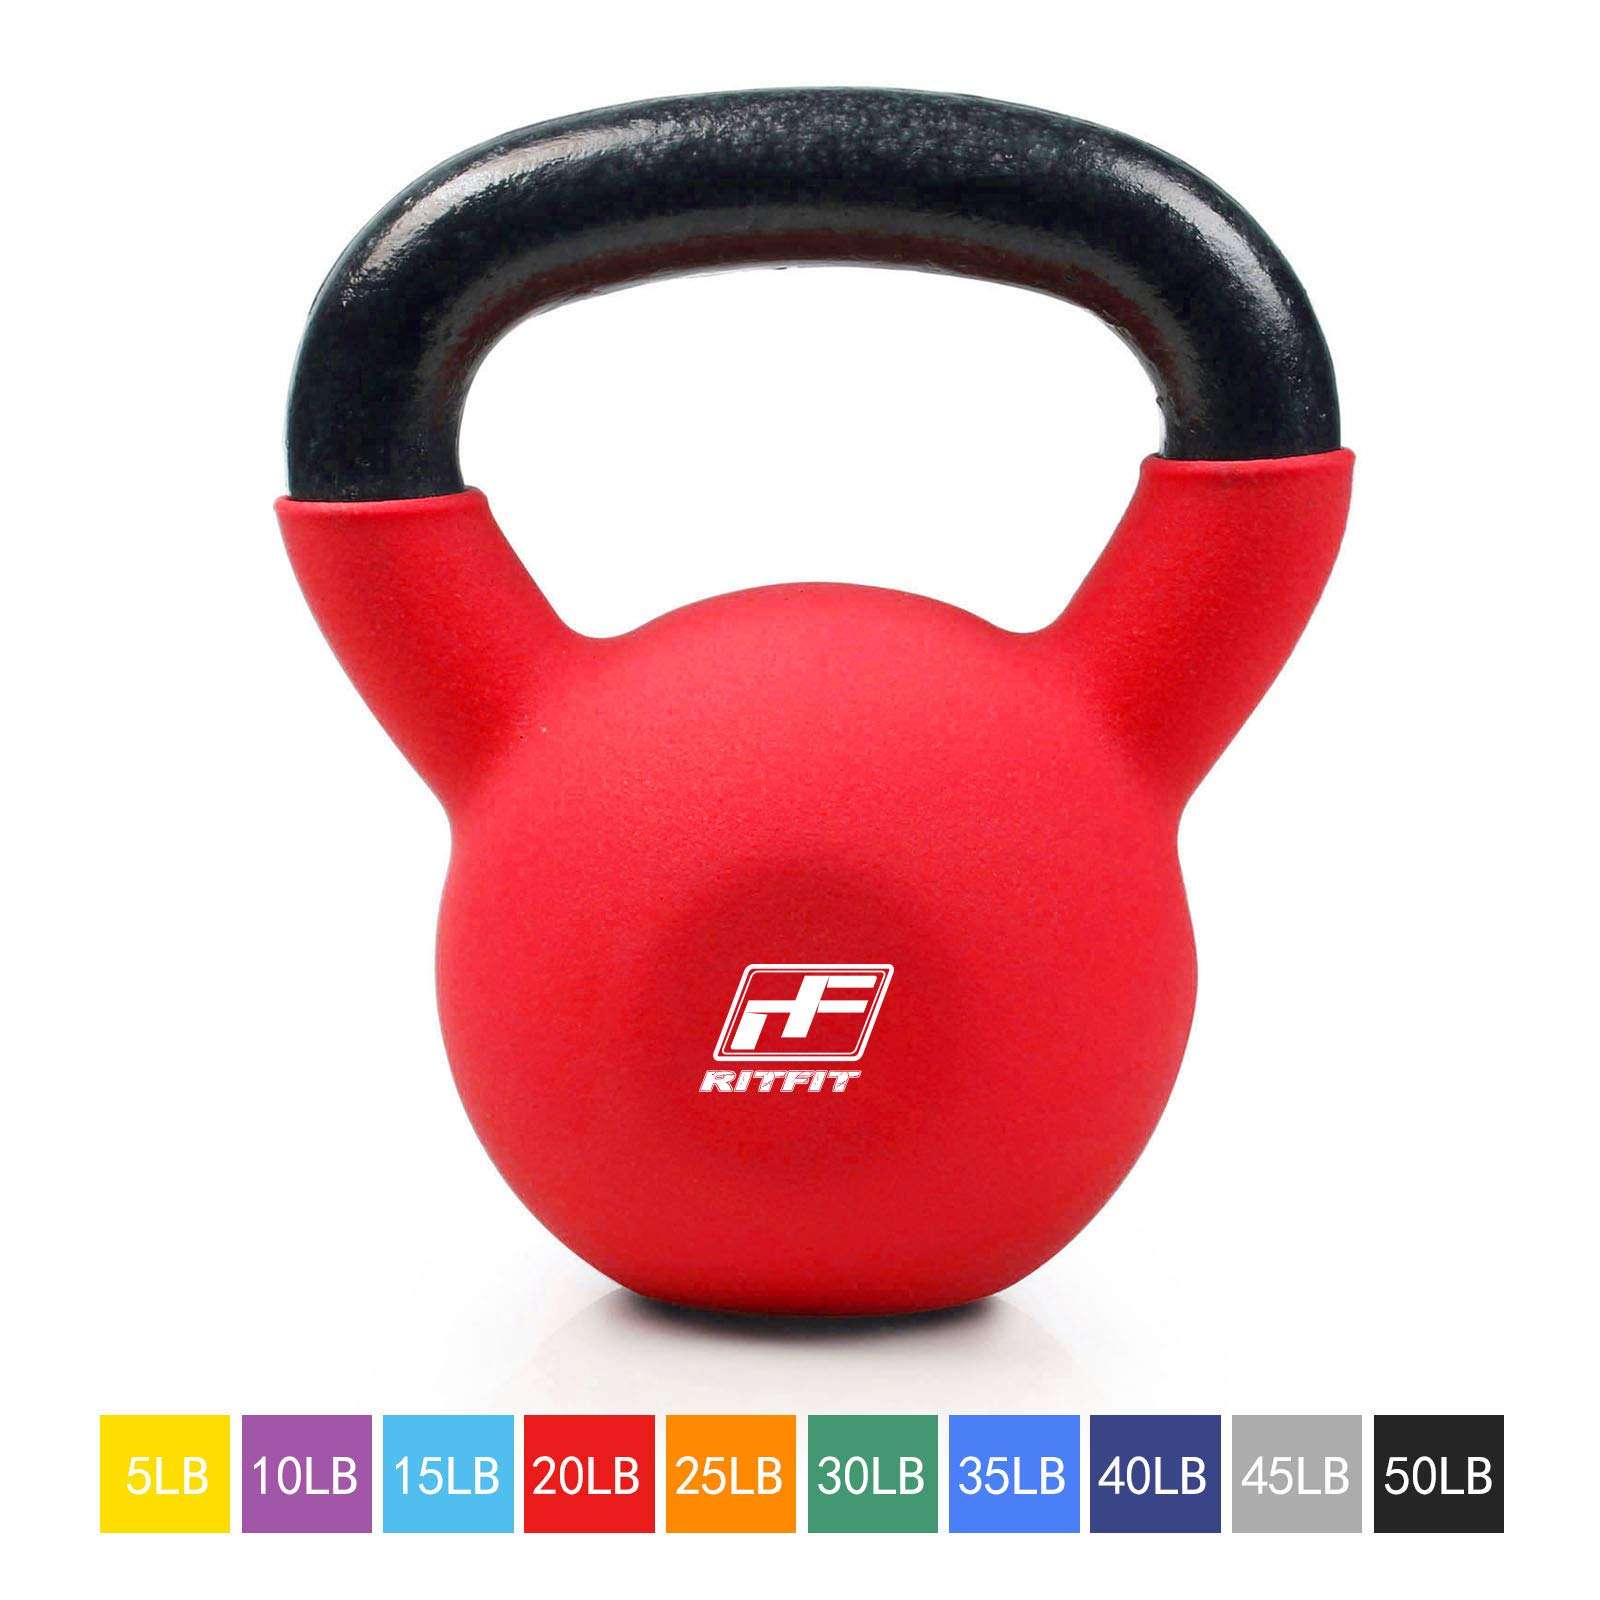 RitFit Neoprene Coated Solid Cast Iron Kettlebell - Great for Full Body Workout, Cross-Training, Weight Loss & Strength Training (5/10/15/20/25/30/35/40/45/50 LB) (20LB(Red))